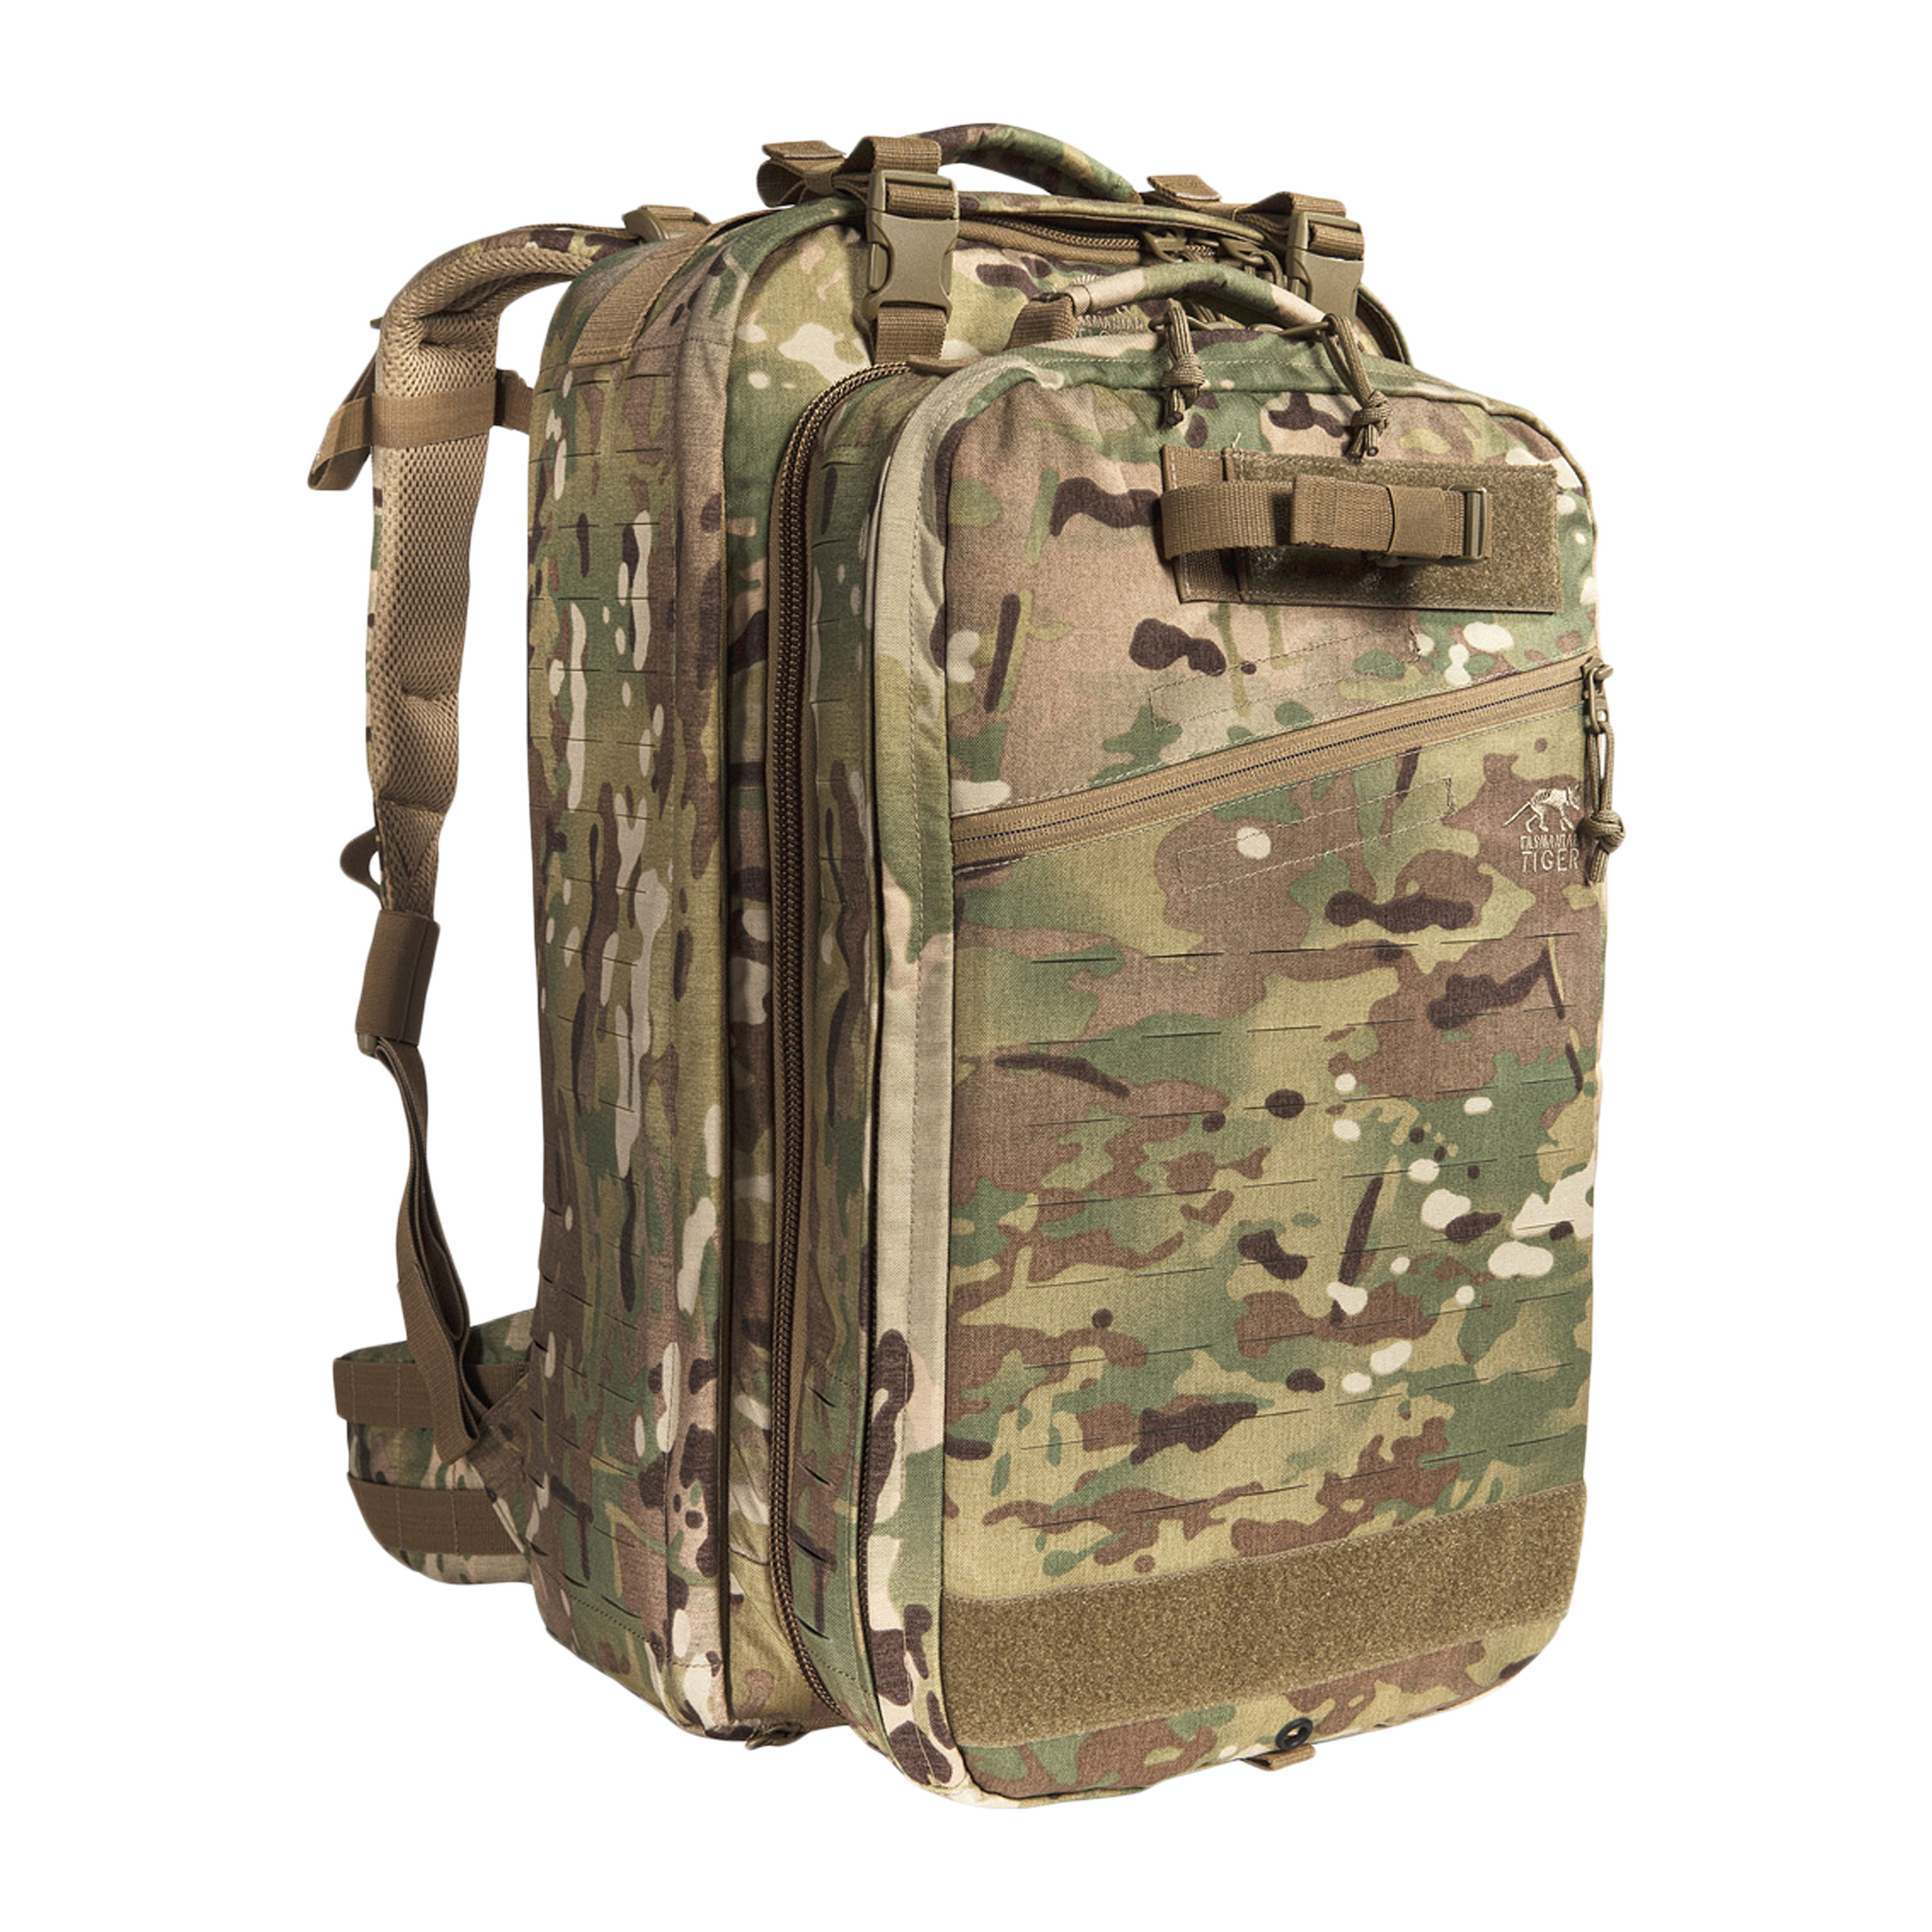 Tasmanian Tiger Rucksack First Responder Move On MKII multicam